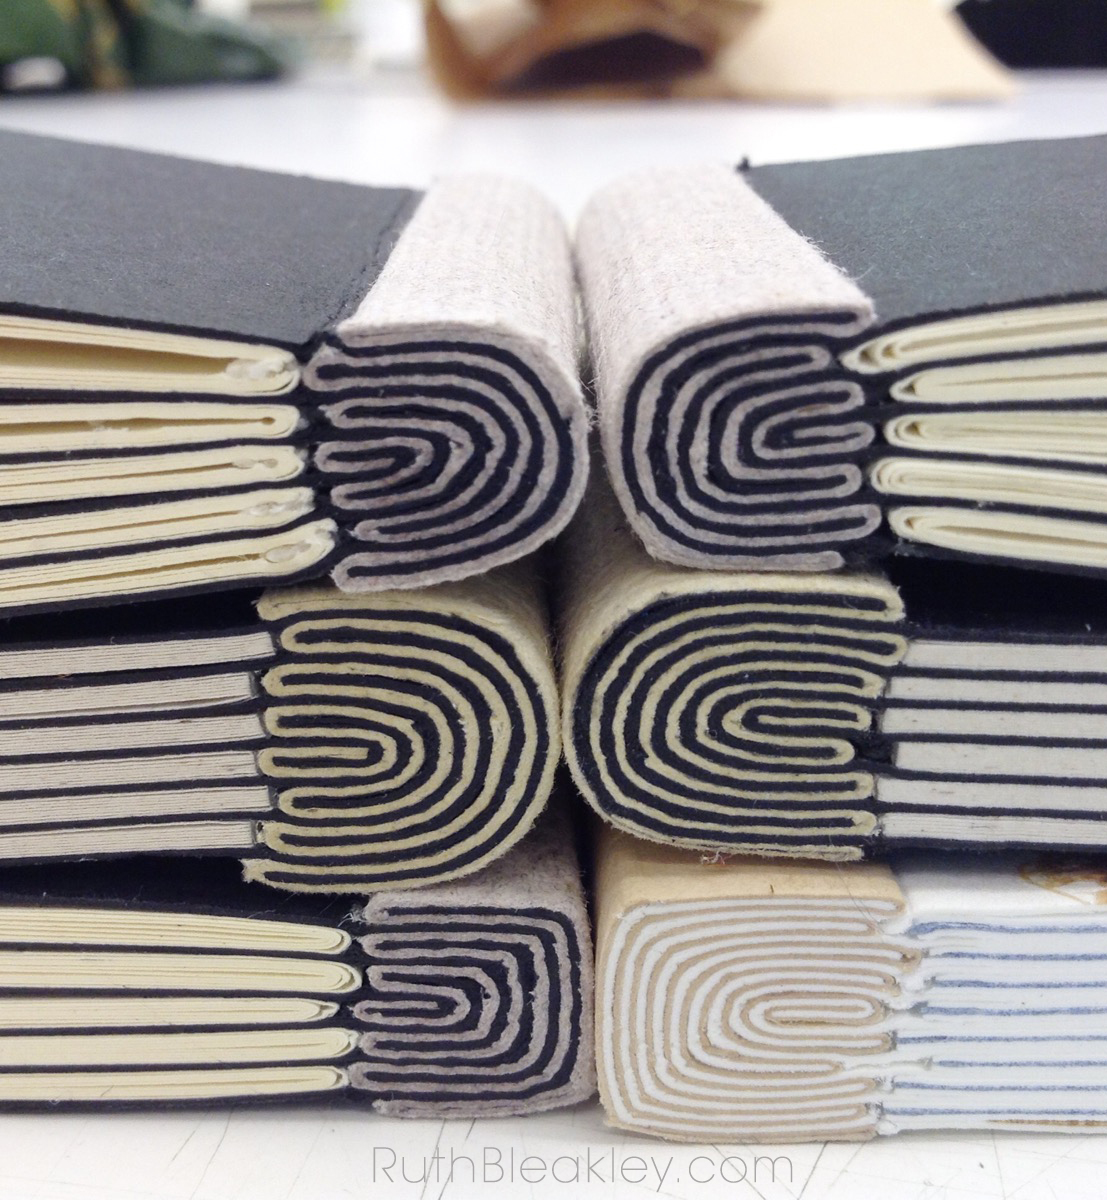 Elbel's Onionskin bookbinding workshop at Penland School of Crafts 2014 - books made by Ruth Bleakley